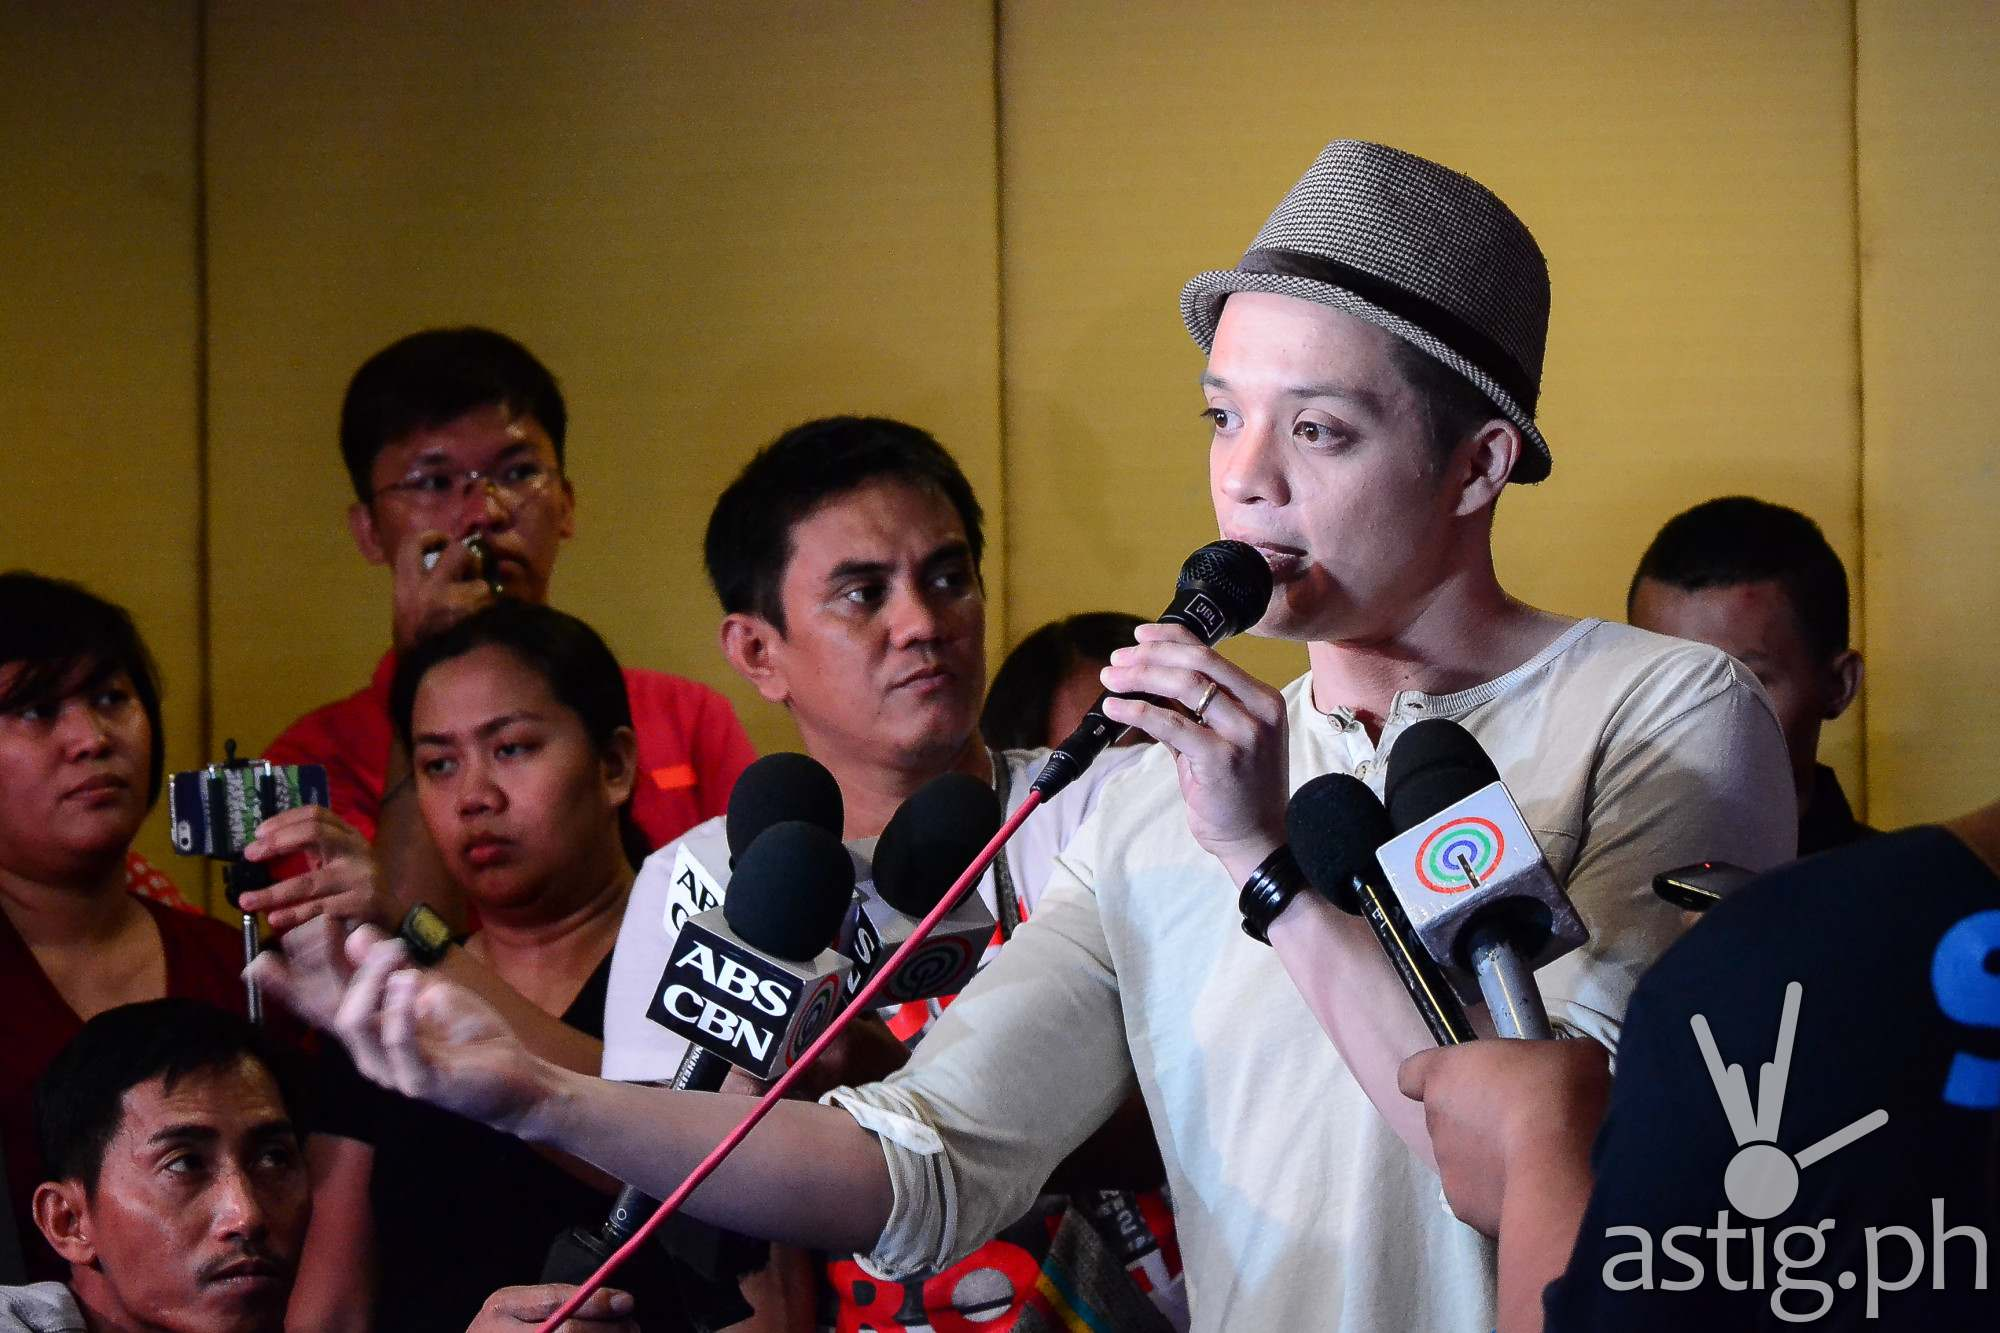 Bamboo Mañalac one of the three judges in The Voice Kids